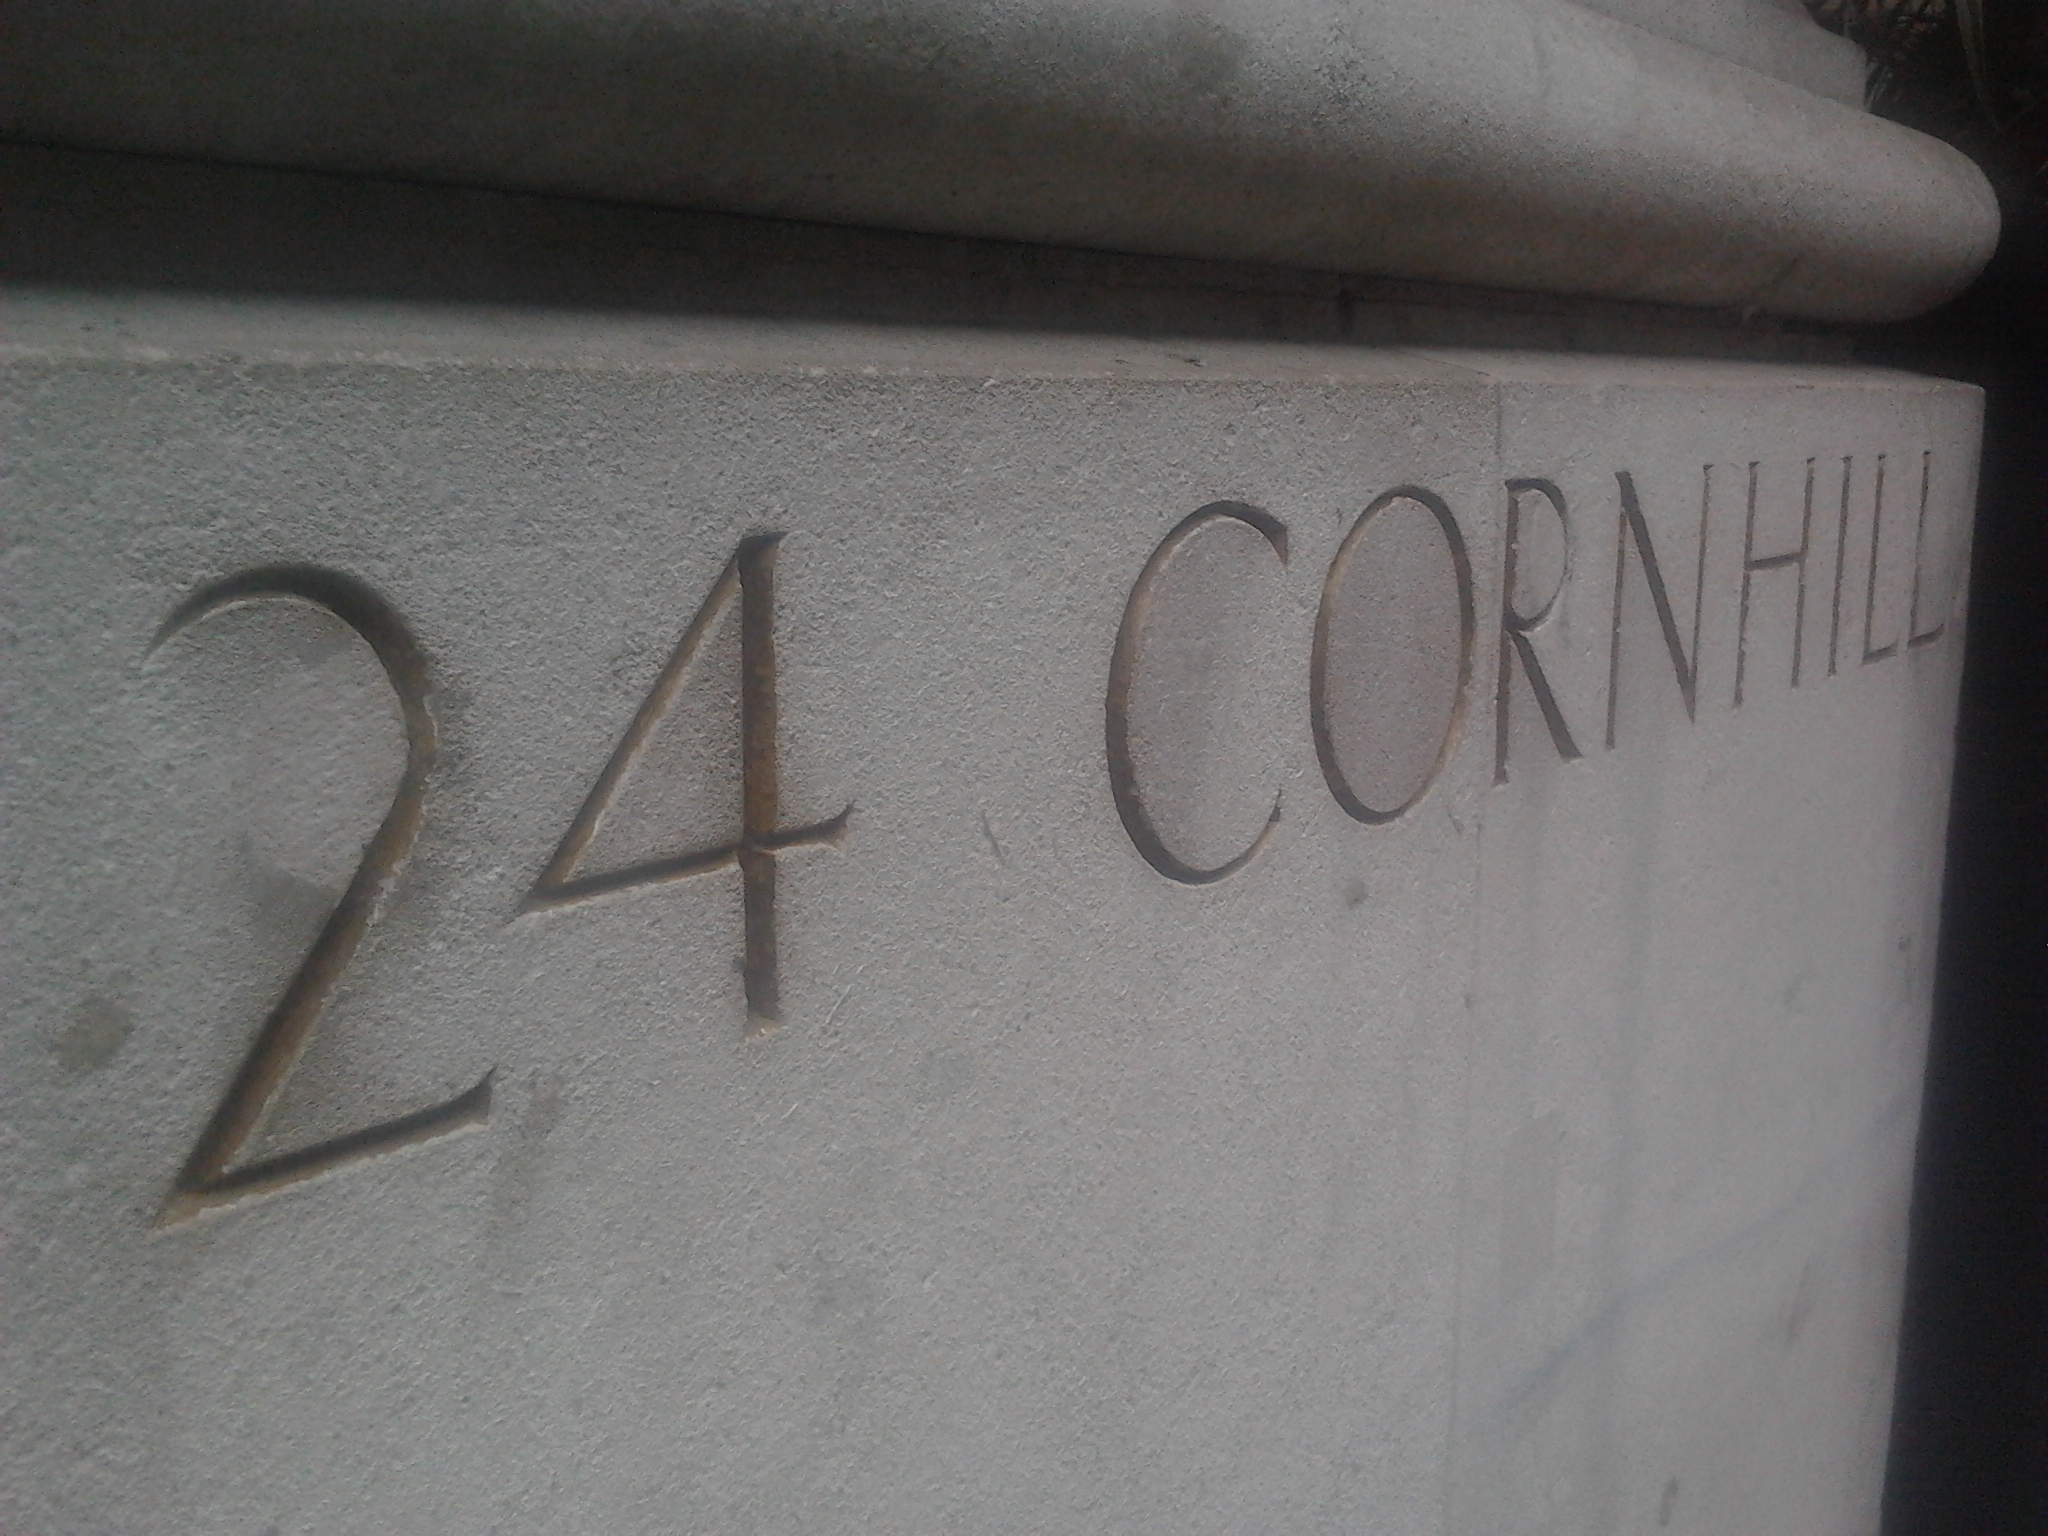 24 Cornhill Numerals NGS